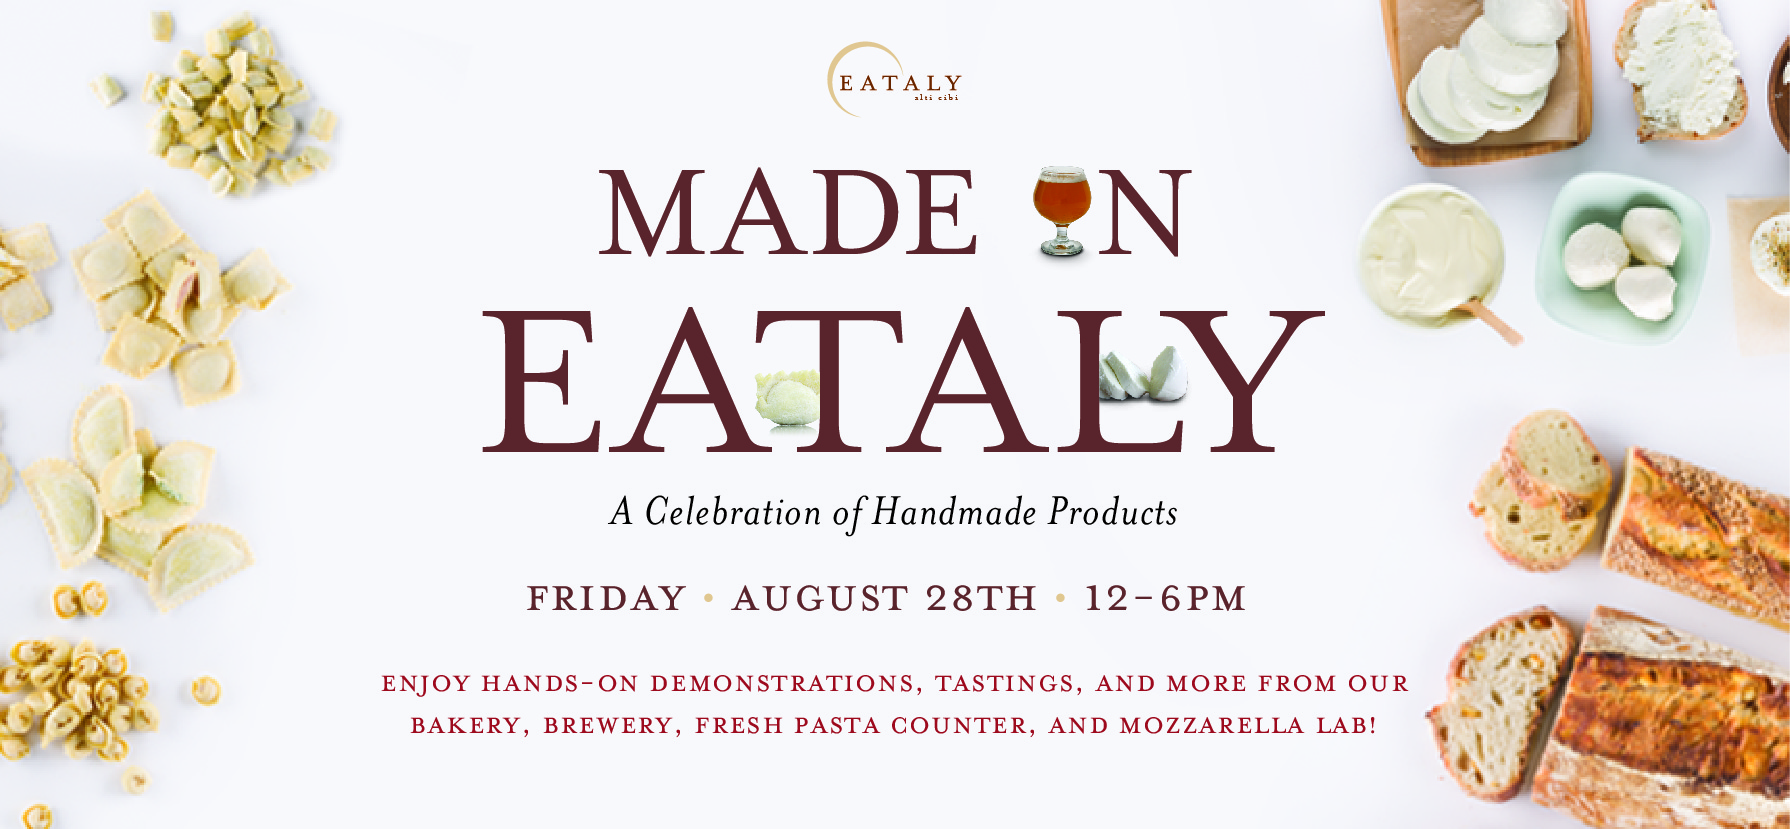 Made In Eataly